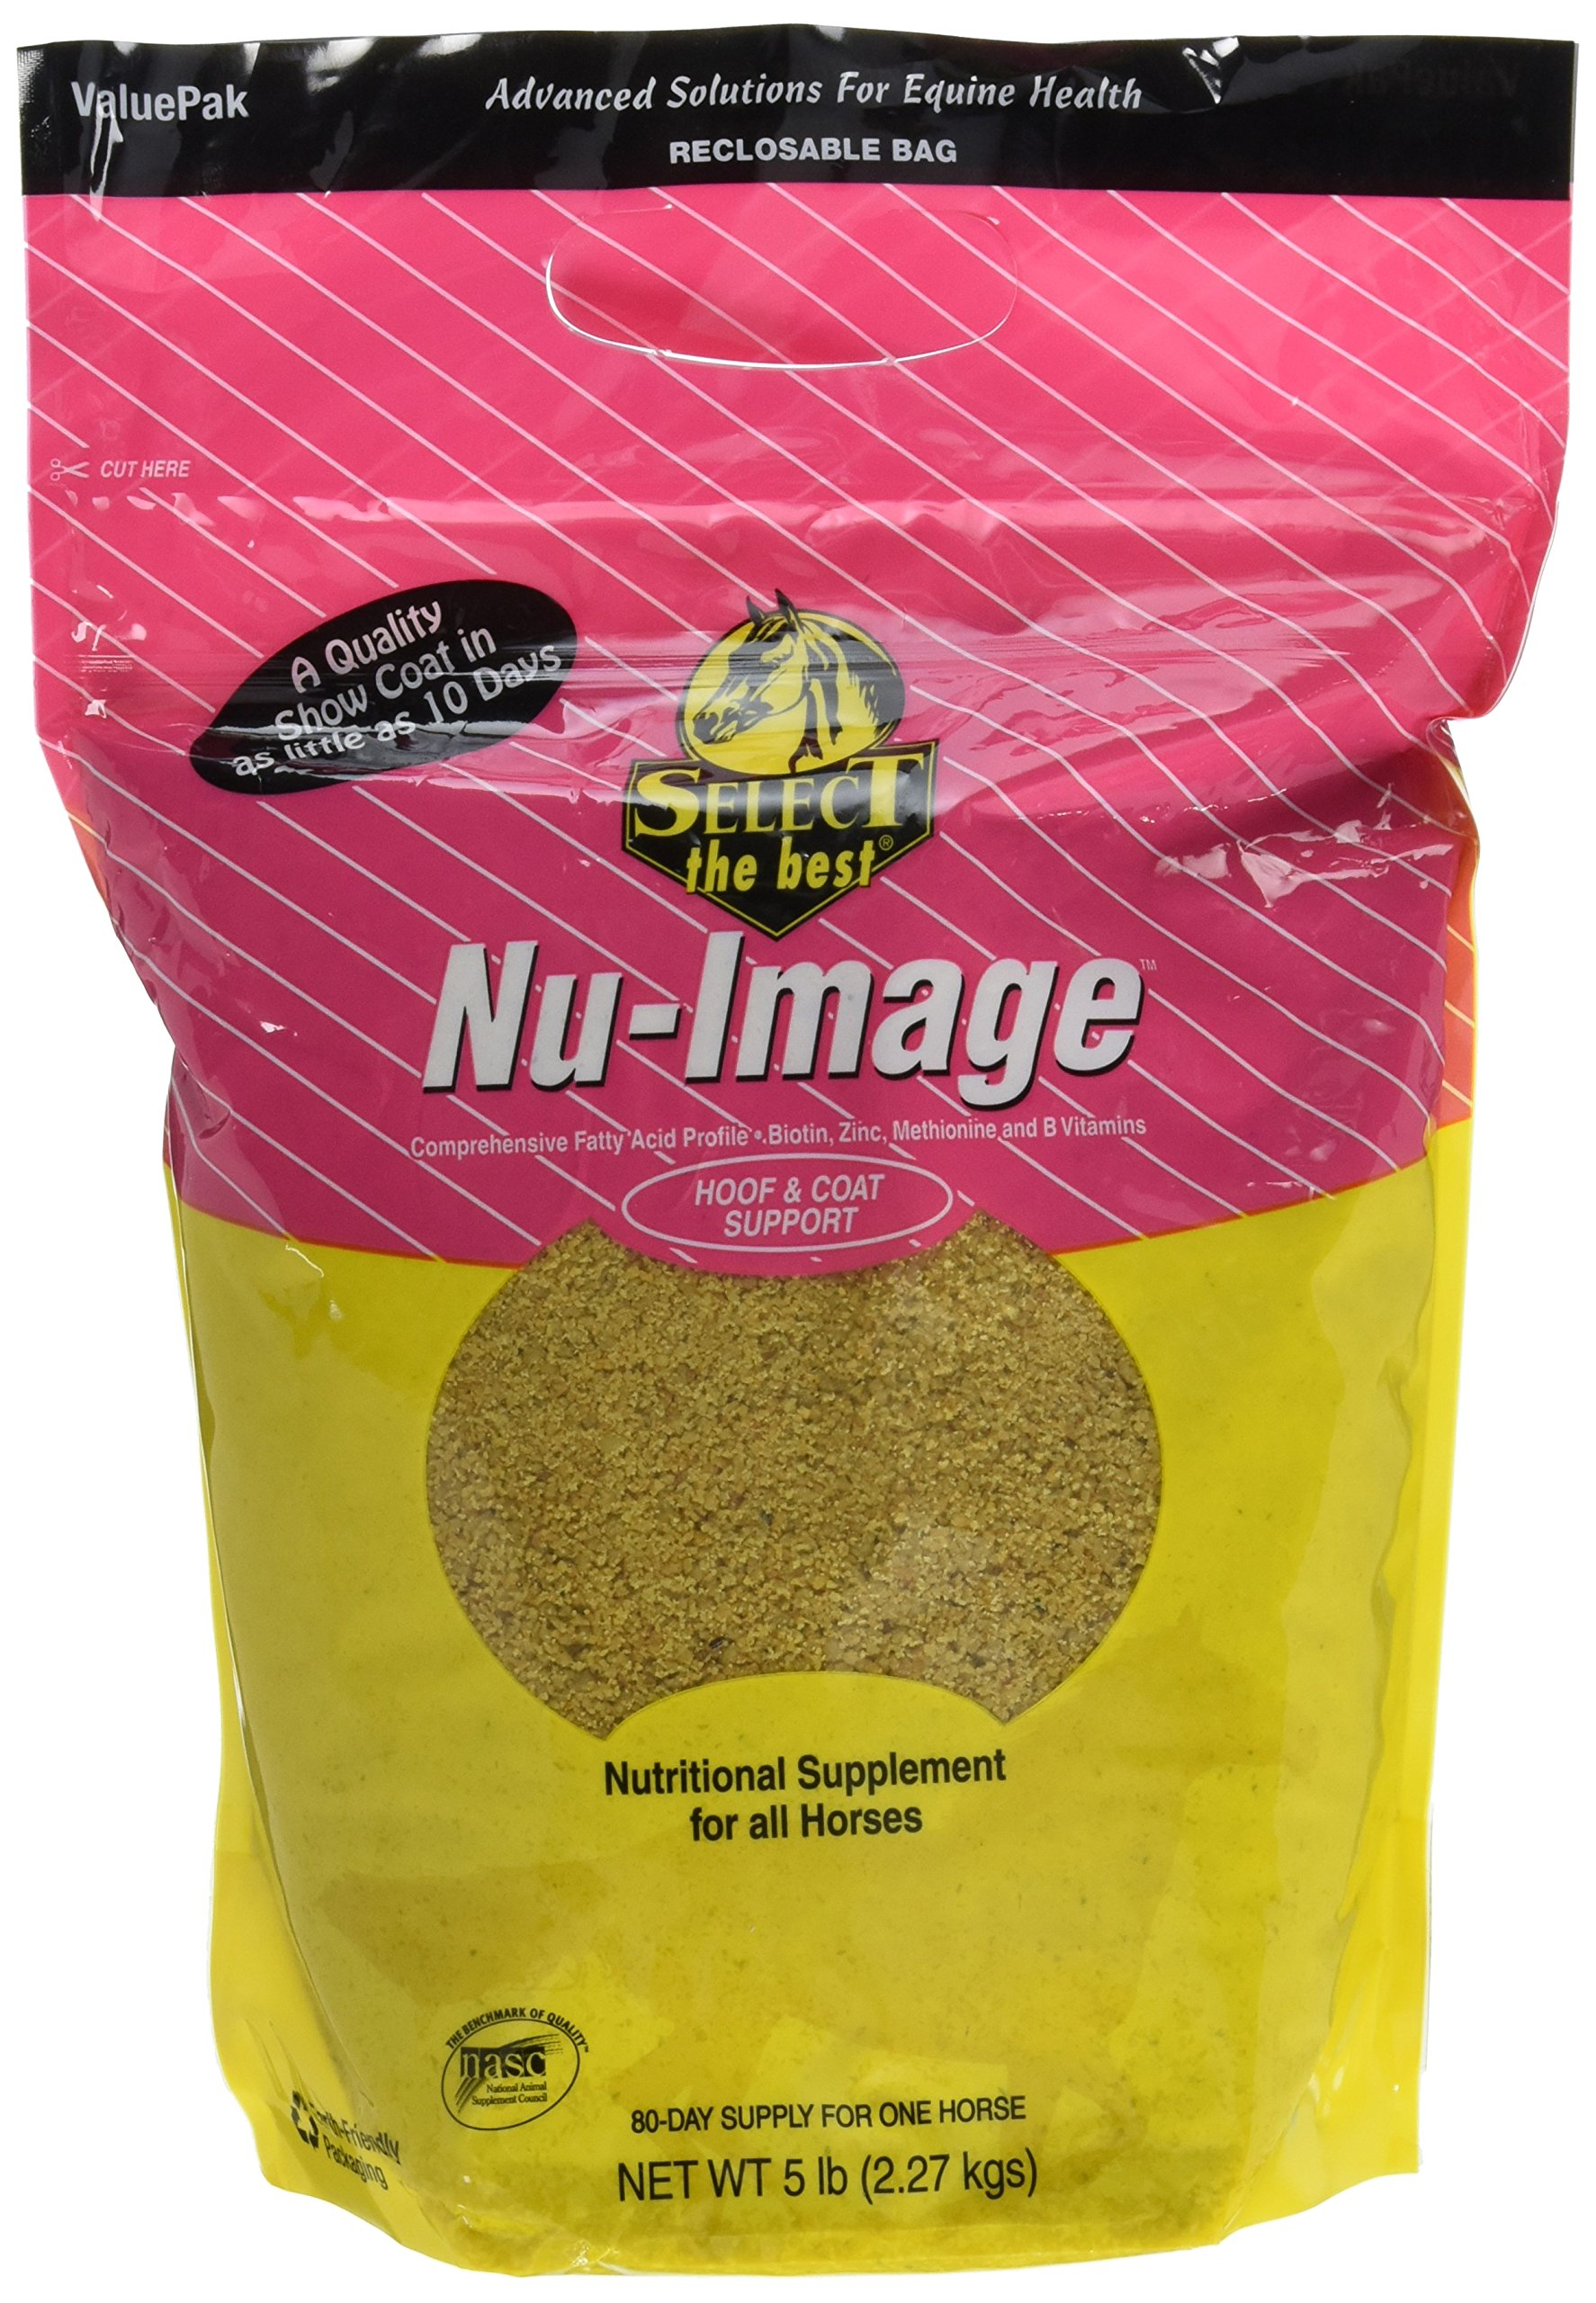 RICHDEL 784299040502 Nu-Image Hoof & Coat Support for Horses, 5 lb by RICHDEL